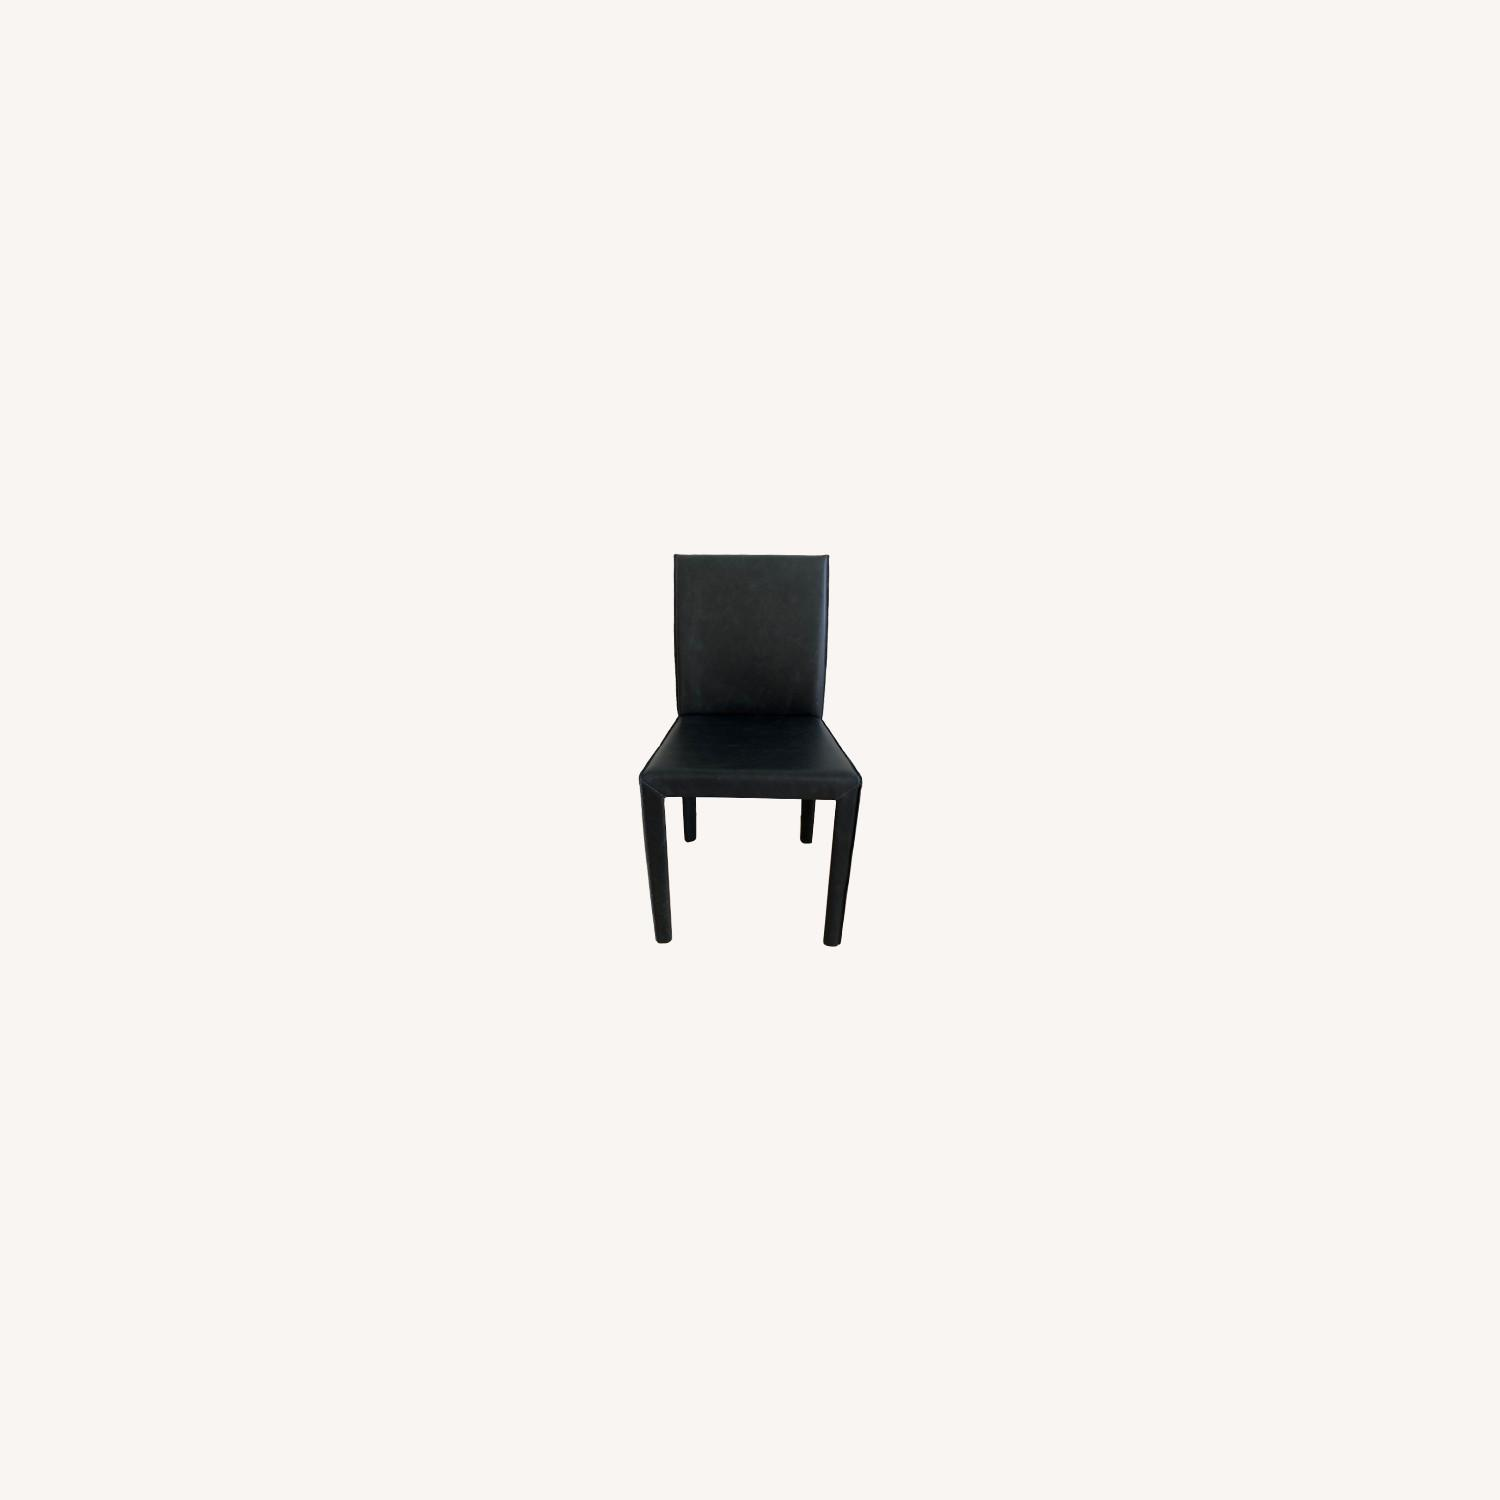 Crate & Barrel Leather Dining Chairs - image-0